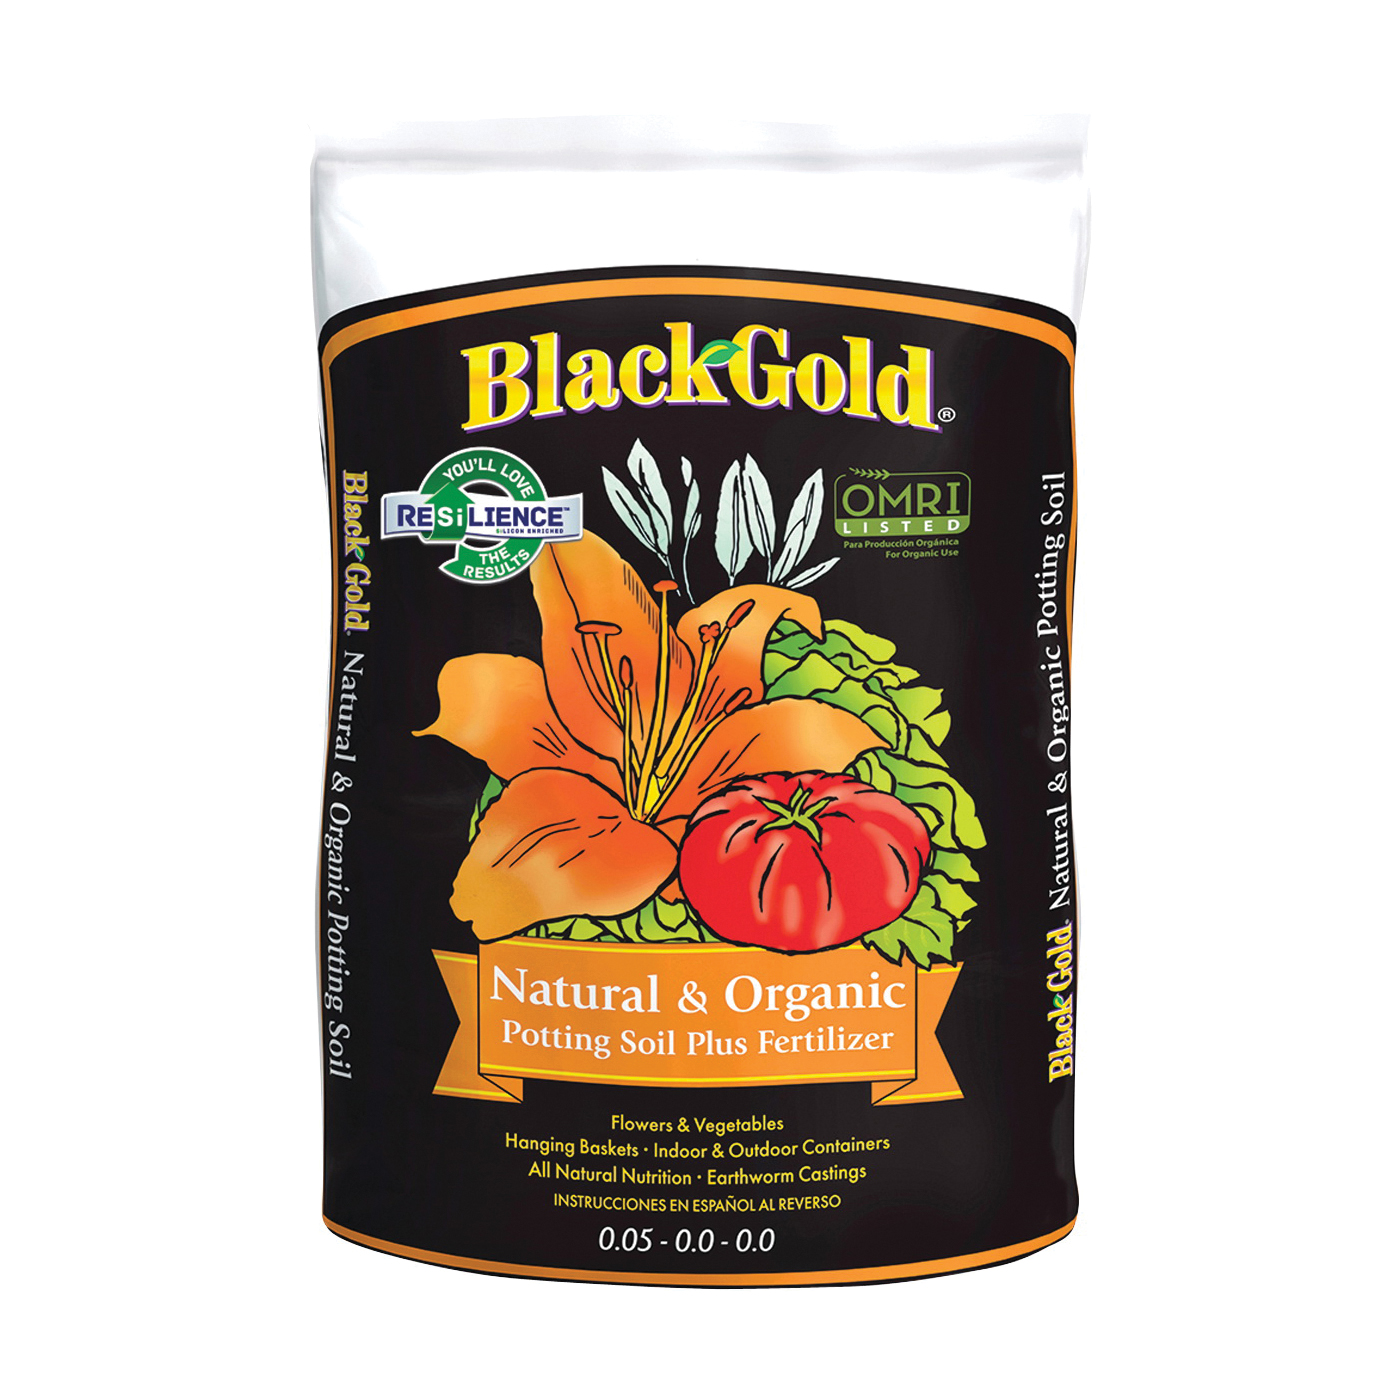 Picture of sun gro BLACK GOLD 1402040 1 CFL P Potting Mix, 1 cu-ft Coverage Area, Granular, Brown/Earthy, 70 Package, Bag